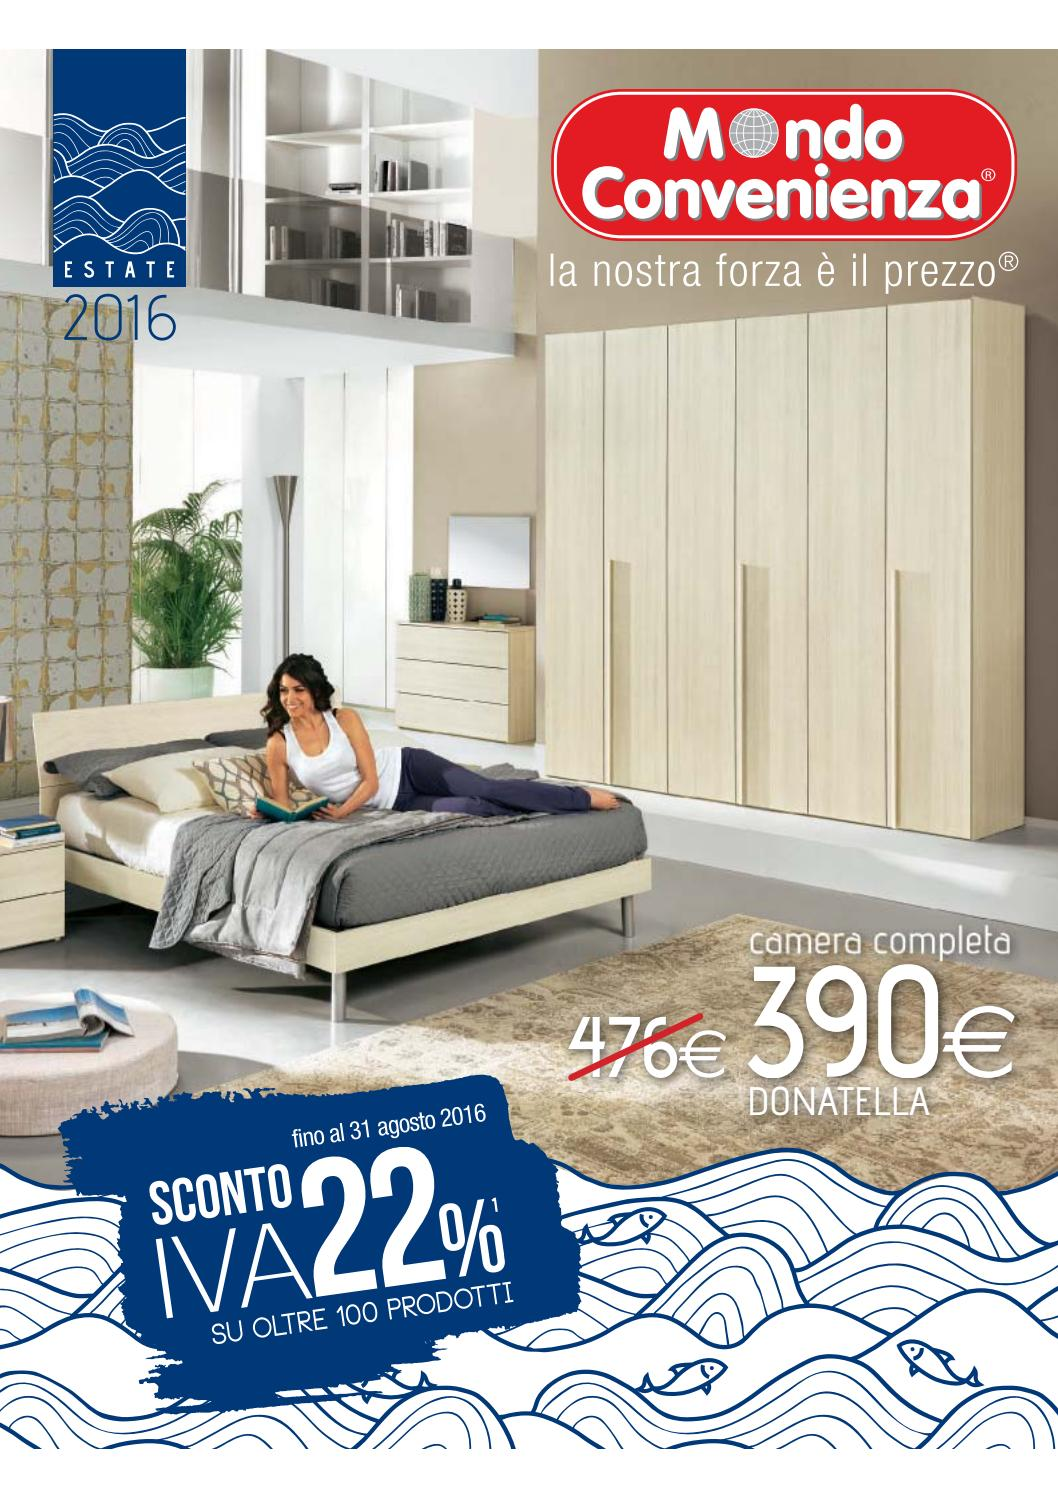 Armadio Altezza 220 Mondo Convenienza.Mondo Conevenienza Catalogo Estate 2016 1 By Mobilpro Issuu